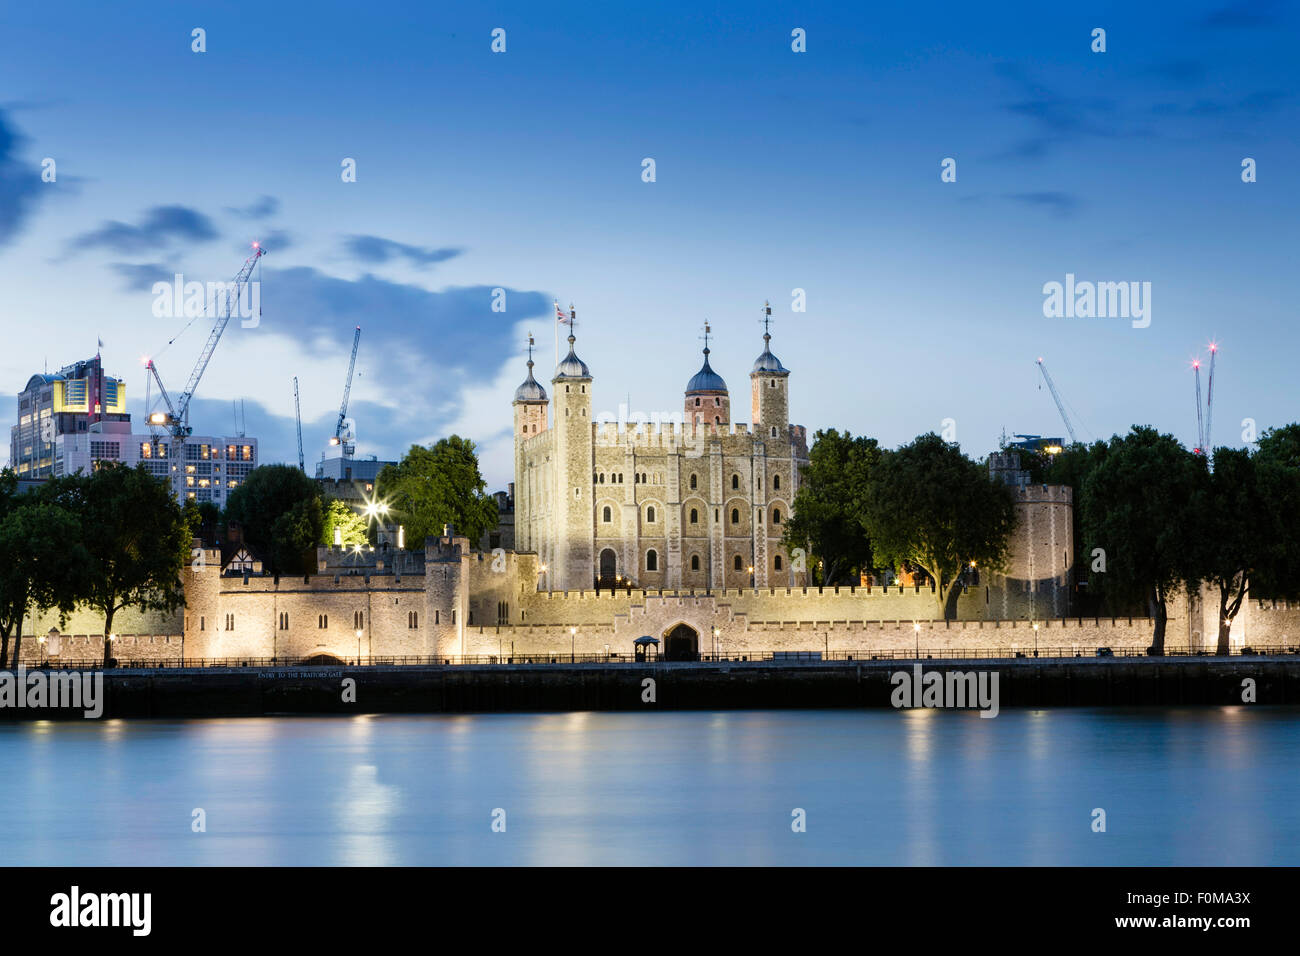 The Tower of London, London, England - Stock Image